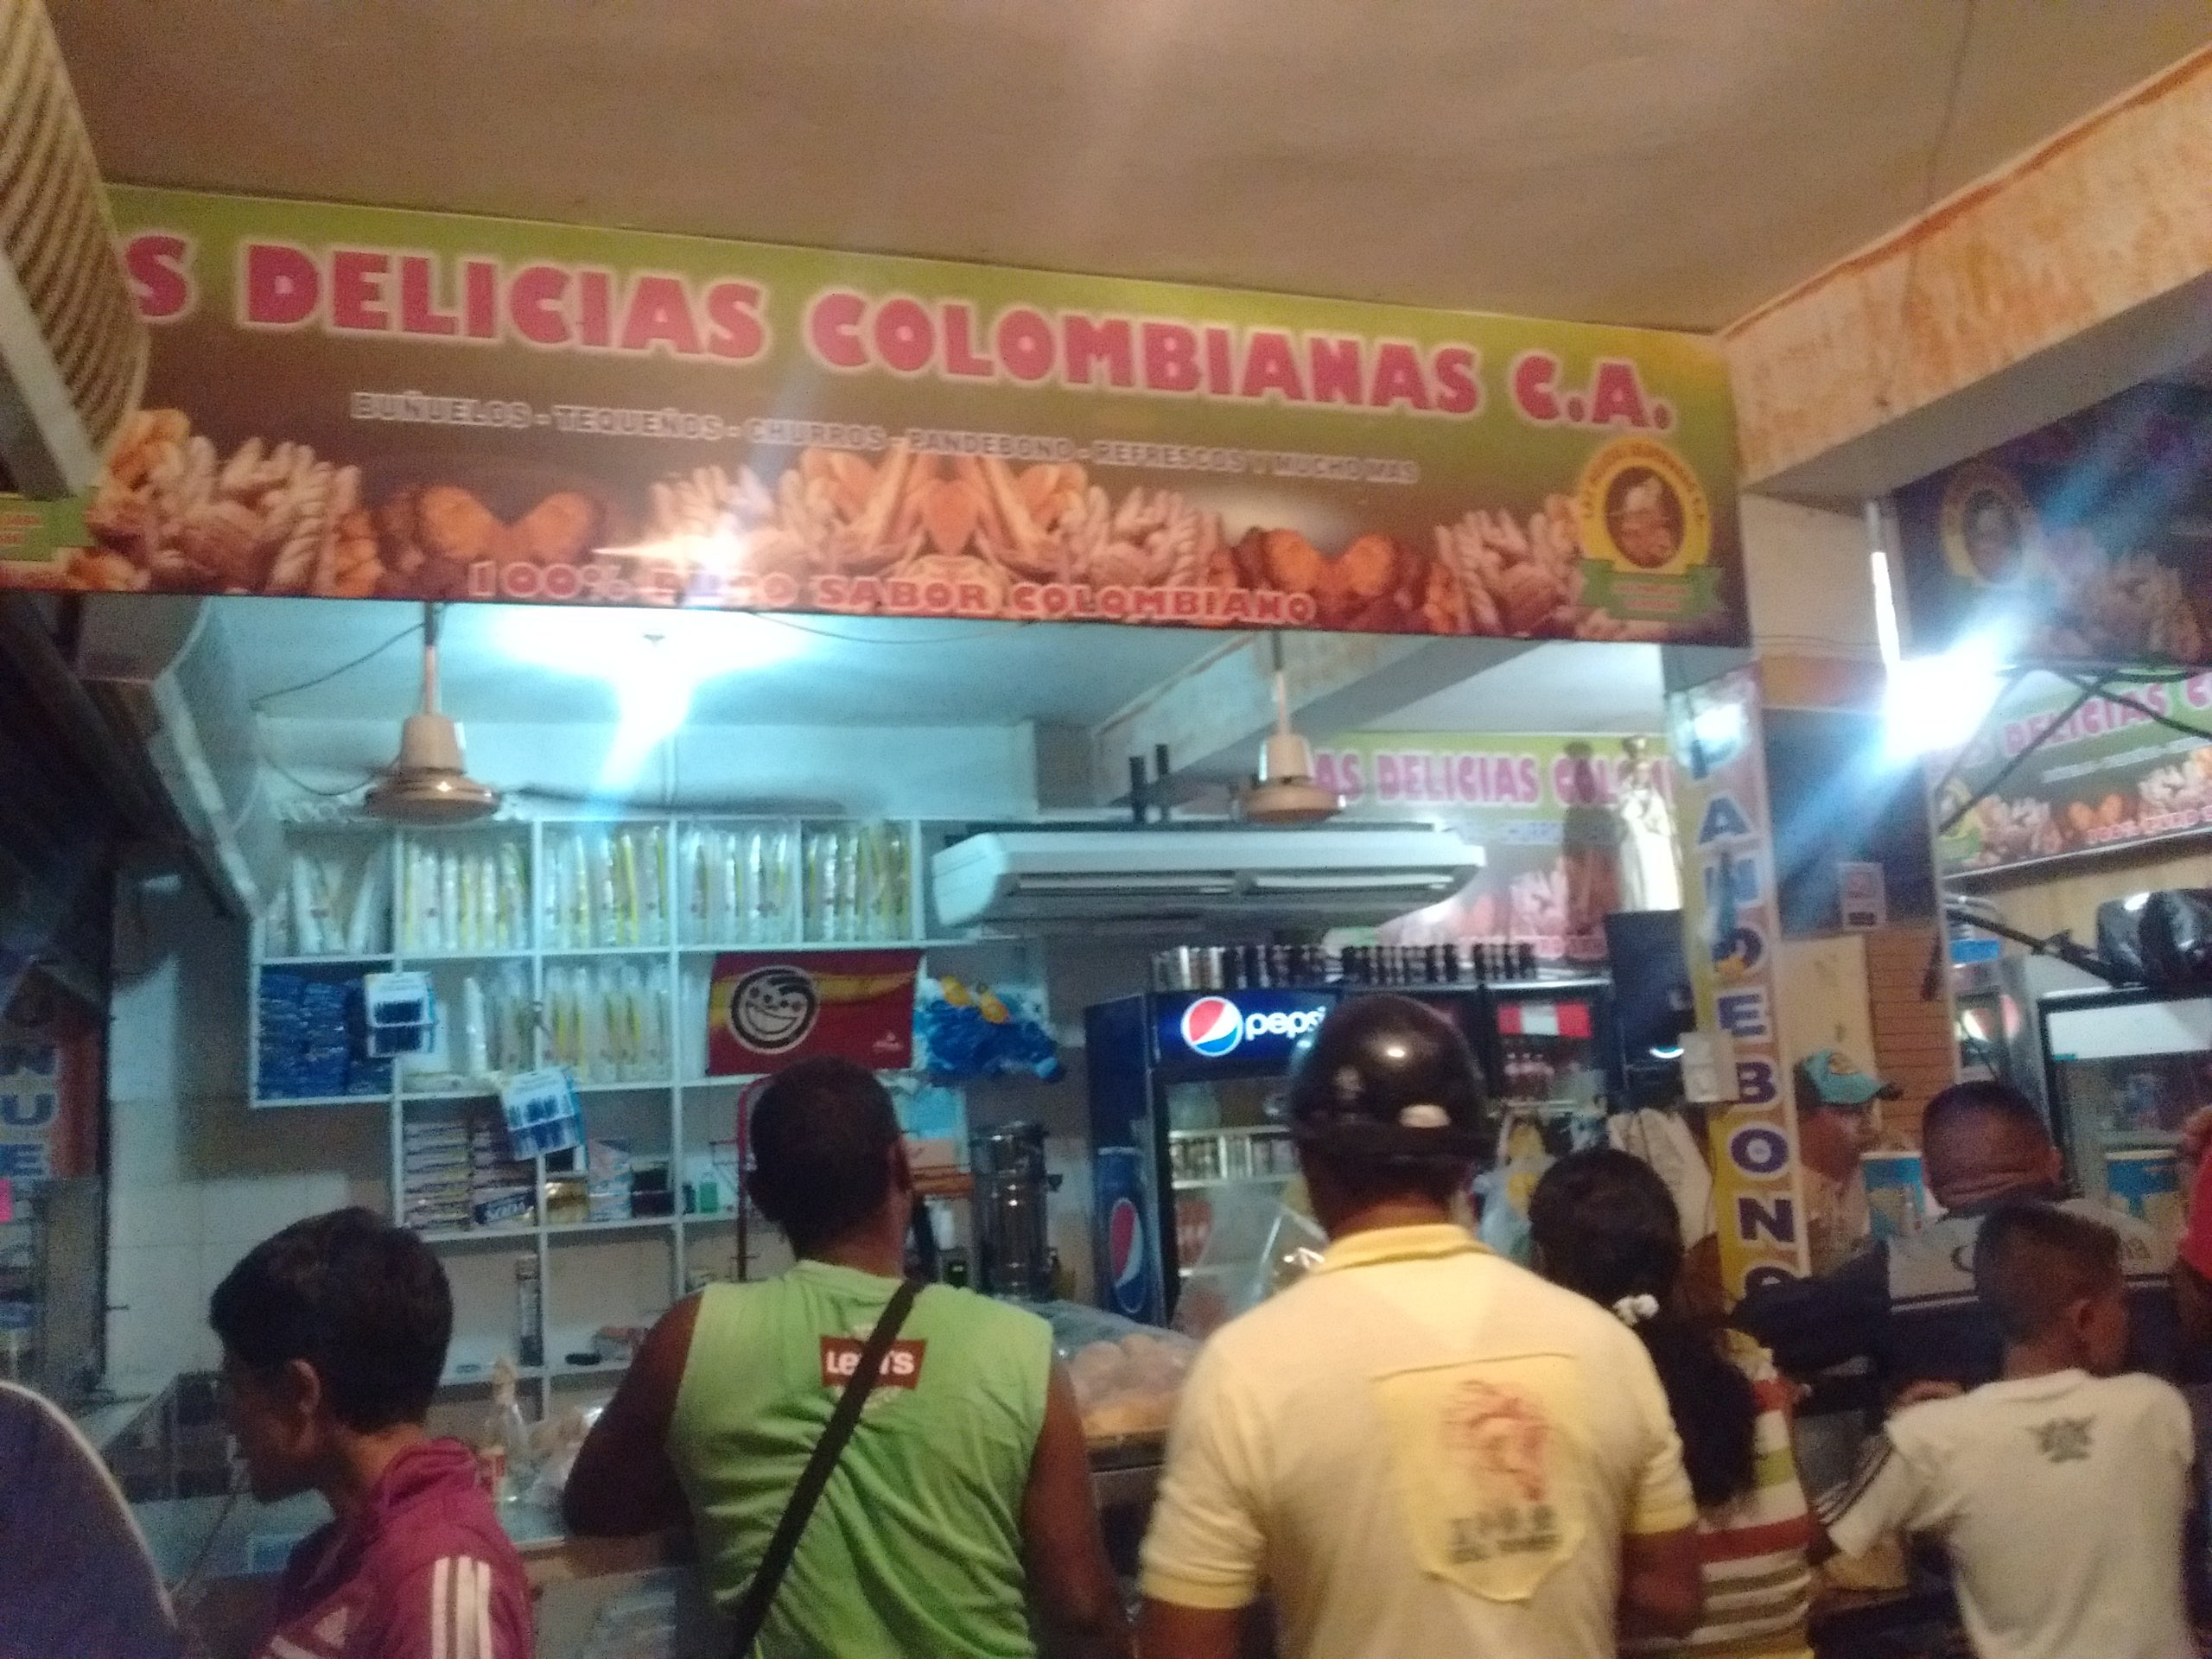 Food in Las Delicias Colombianas